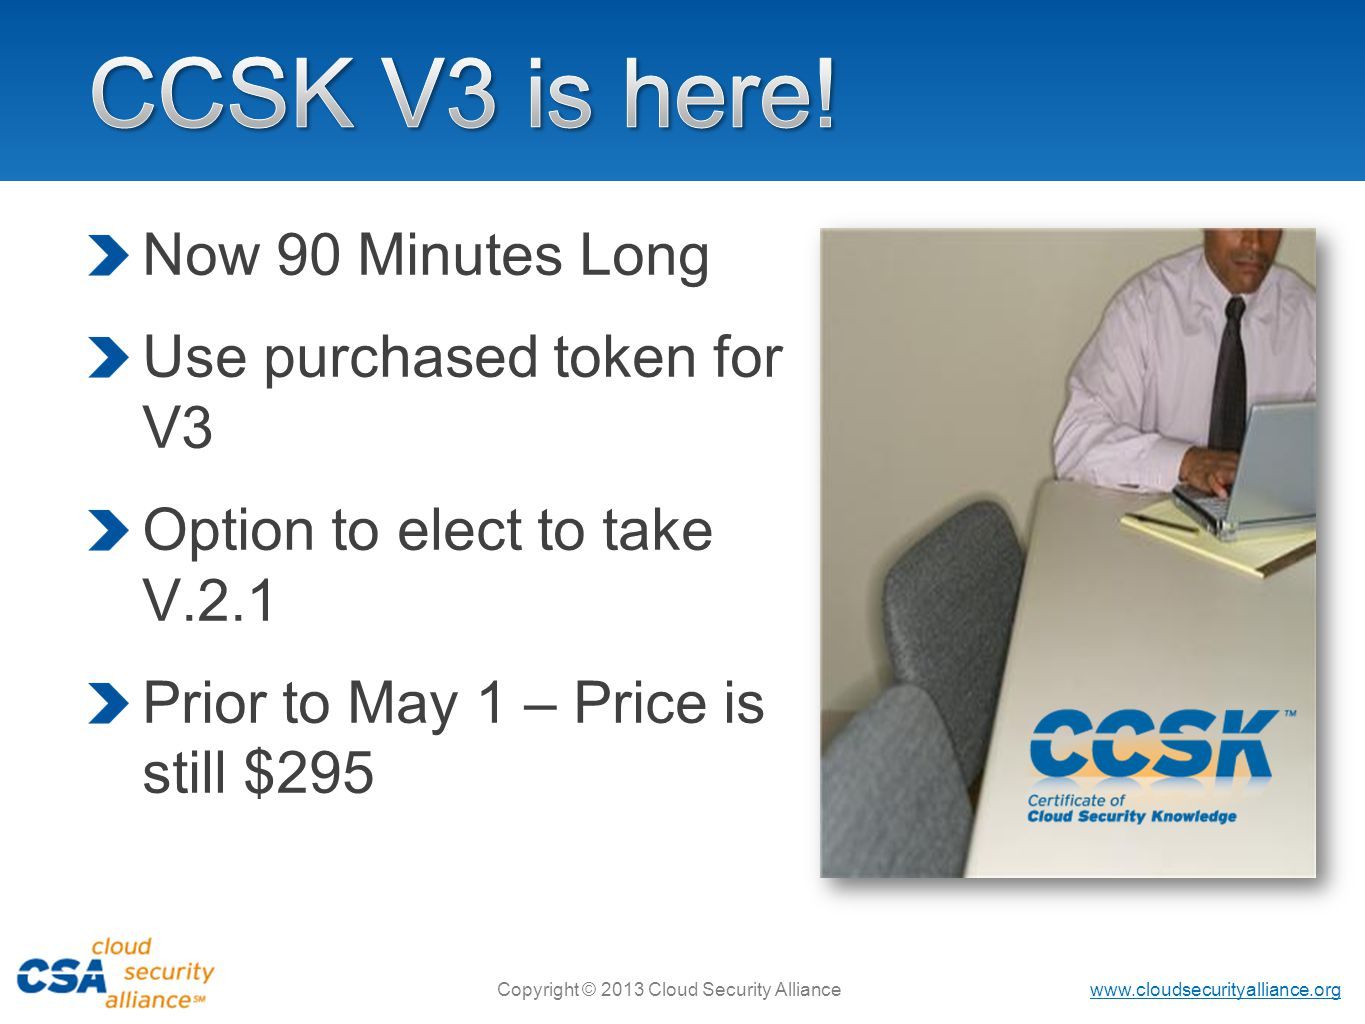 www.cloudsecurityalliance.org Copyright © 2013 Cloud Security Alliance Now 90 Minutes Long Use purchased token for V3 Option to elect to take V.2.1 Prior to May 1 – Price is still $295